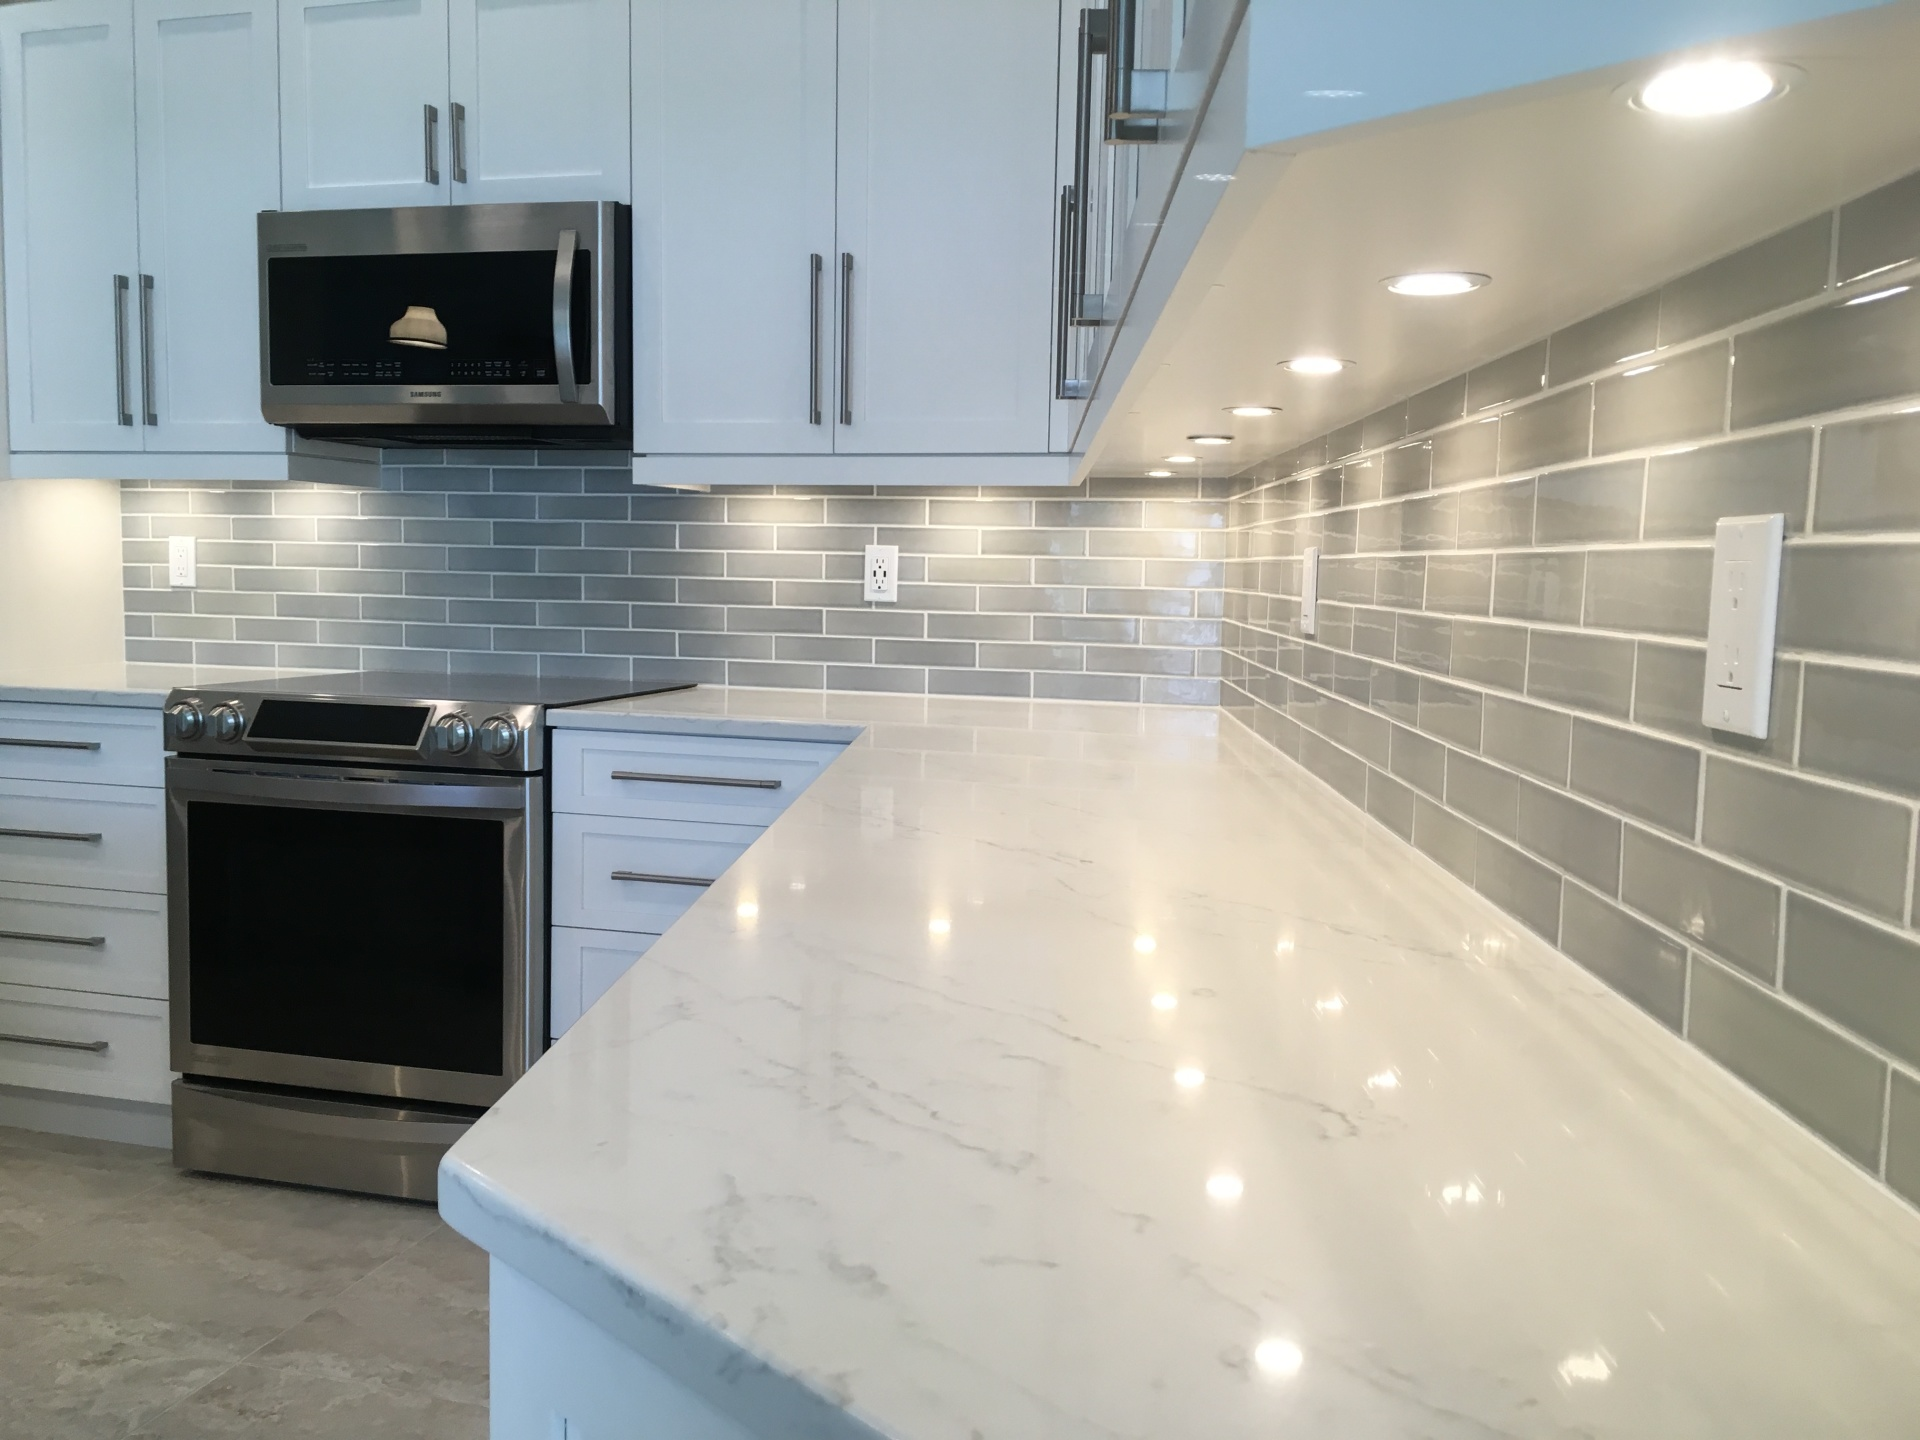 Pottery backsplash